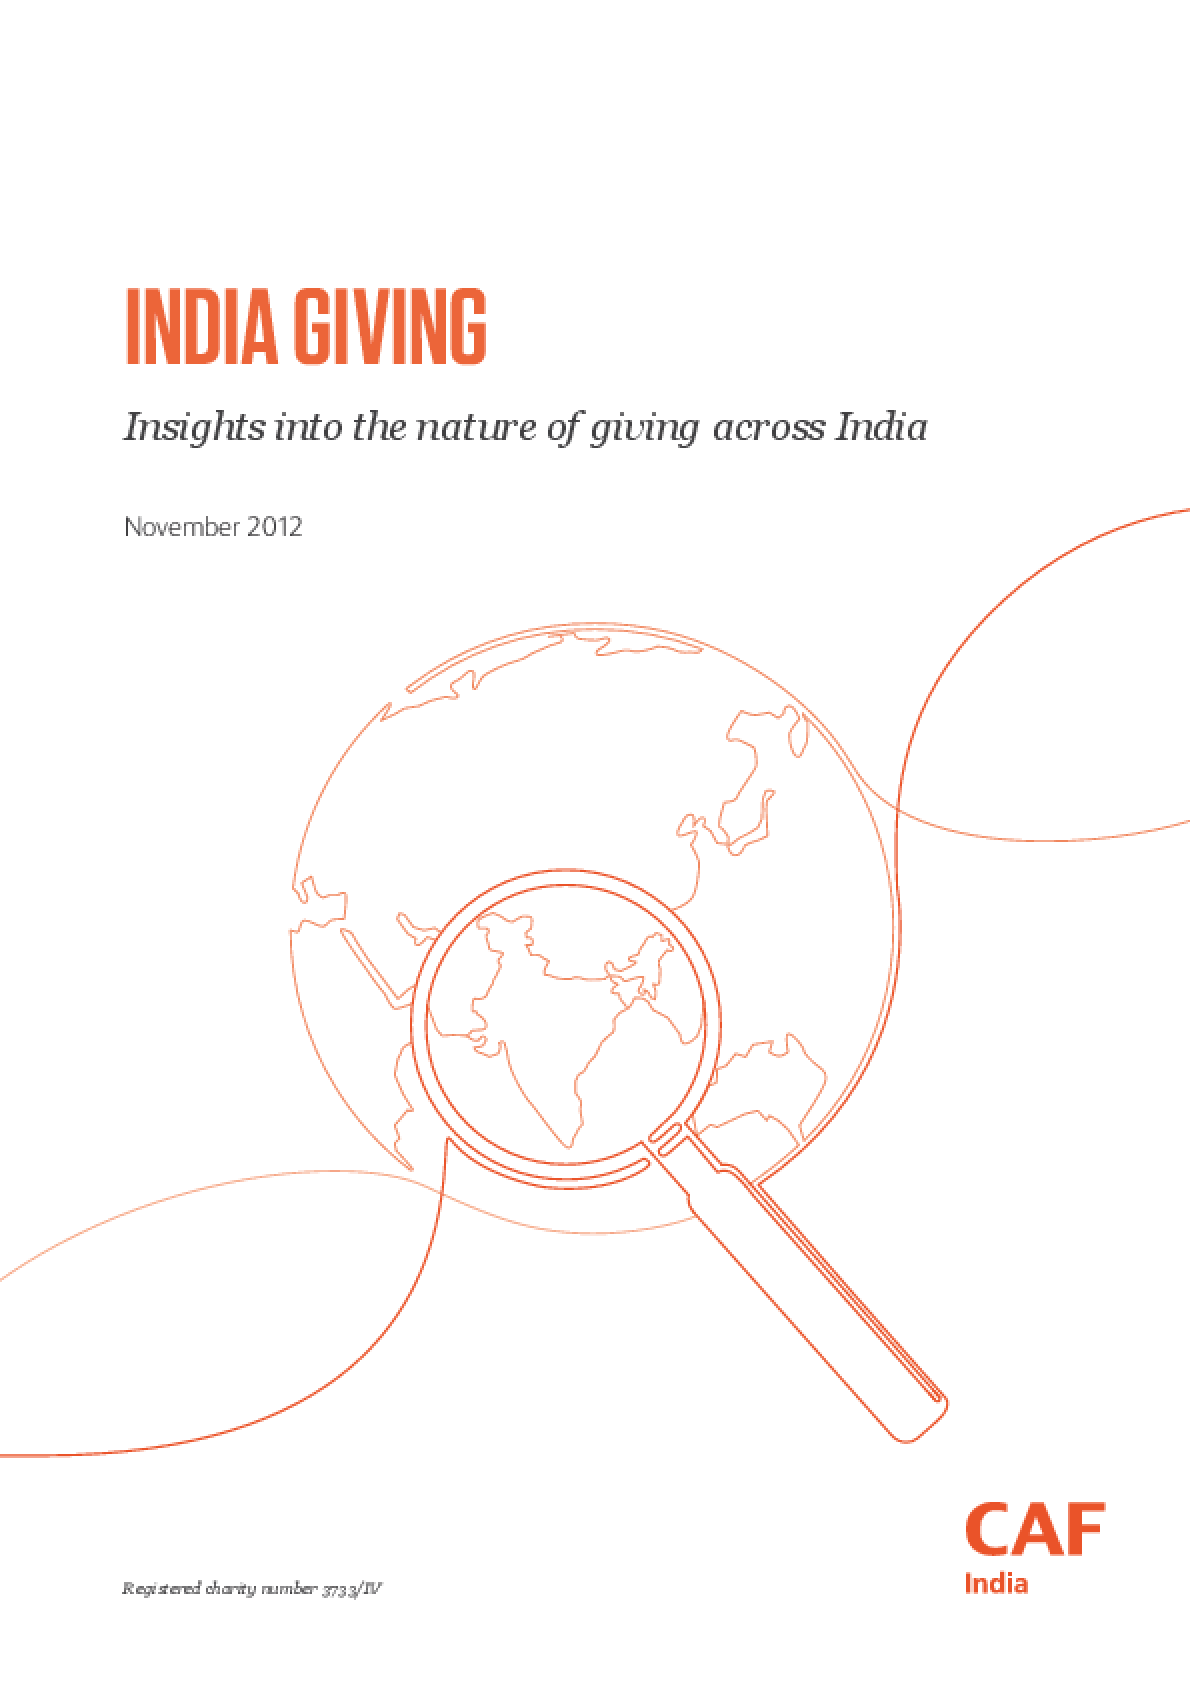 India Giving: Insights into the Nature of Giving Across India